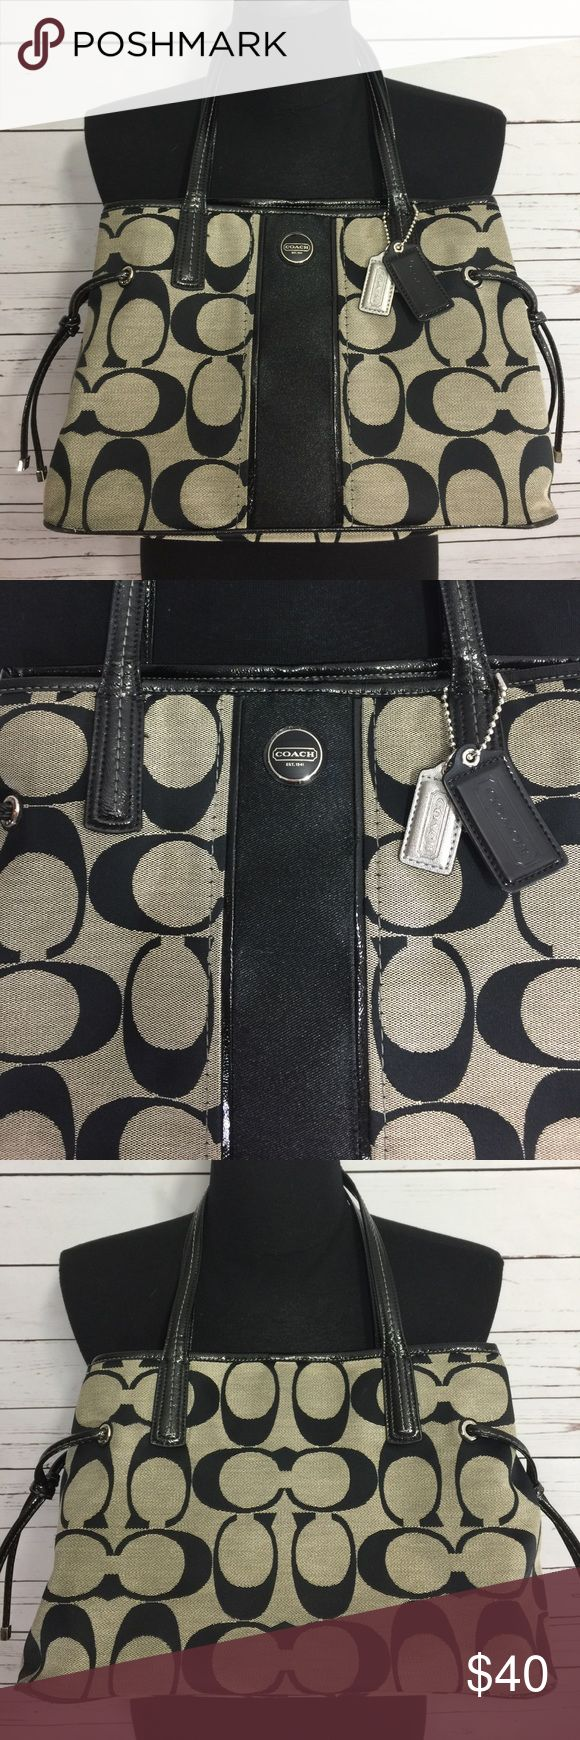 "Gray and Black Signature Coach Satchel Purse Great used condition gray and black signature coach satchel purse. Purse has minor wear but is clean. Smoke-free home. 14 inches wide 9.5"" deep. Double handles. Coach Bags Satchels"